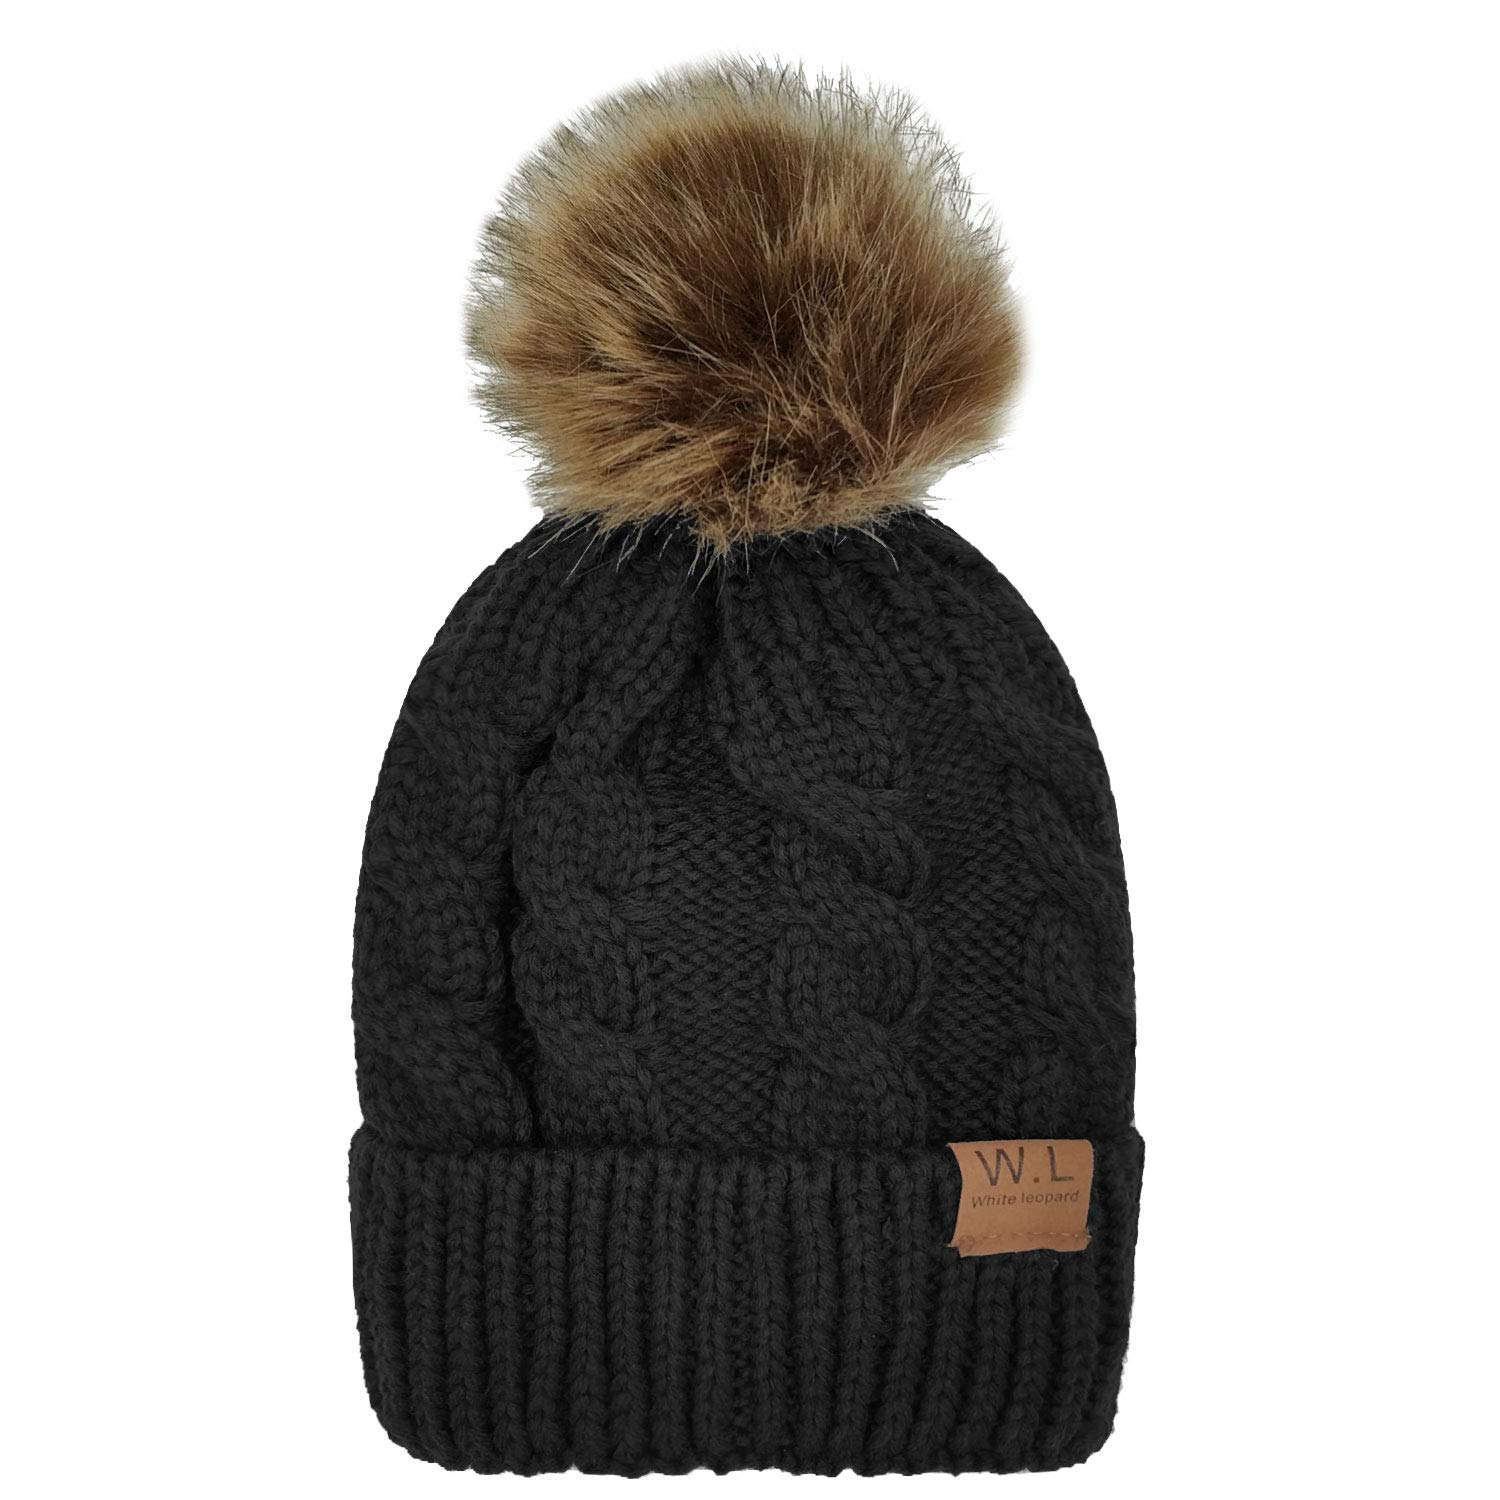 7b640a71794 Amazon.com  Whiteleopard Kid Beanie Hats Lining Pom Pom for Children  -Slouchy Cable Knit Toddler Skull Hat Baby Ski Cap for Girls Boys (Black)   Clothing